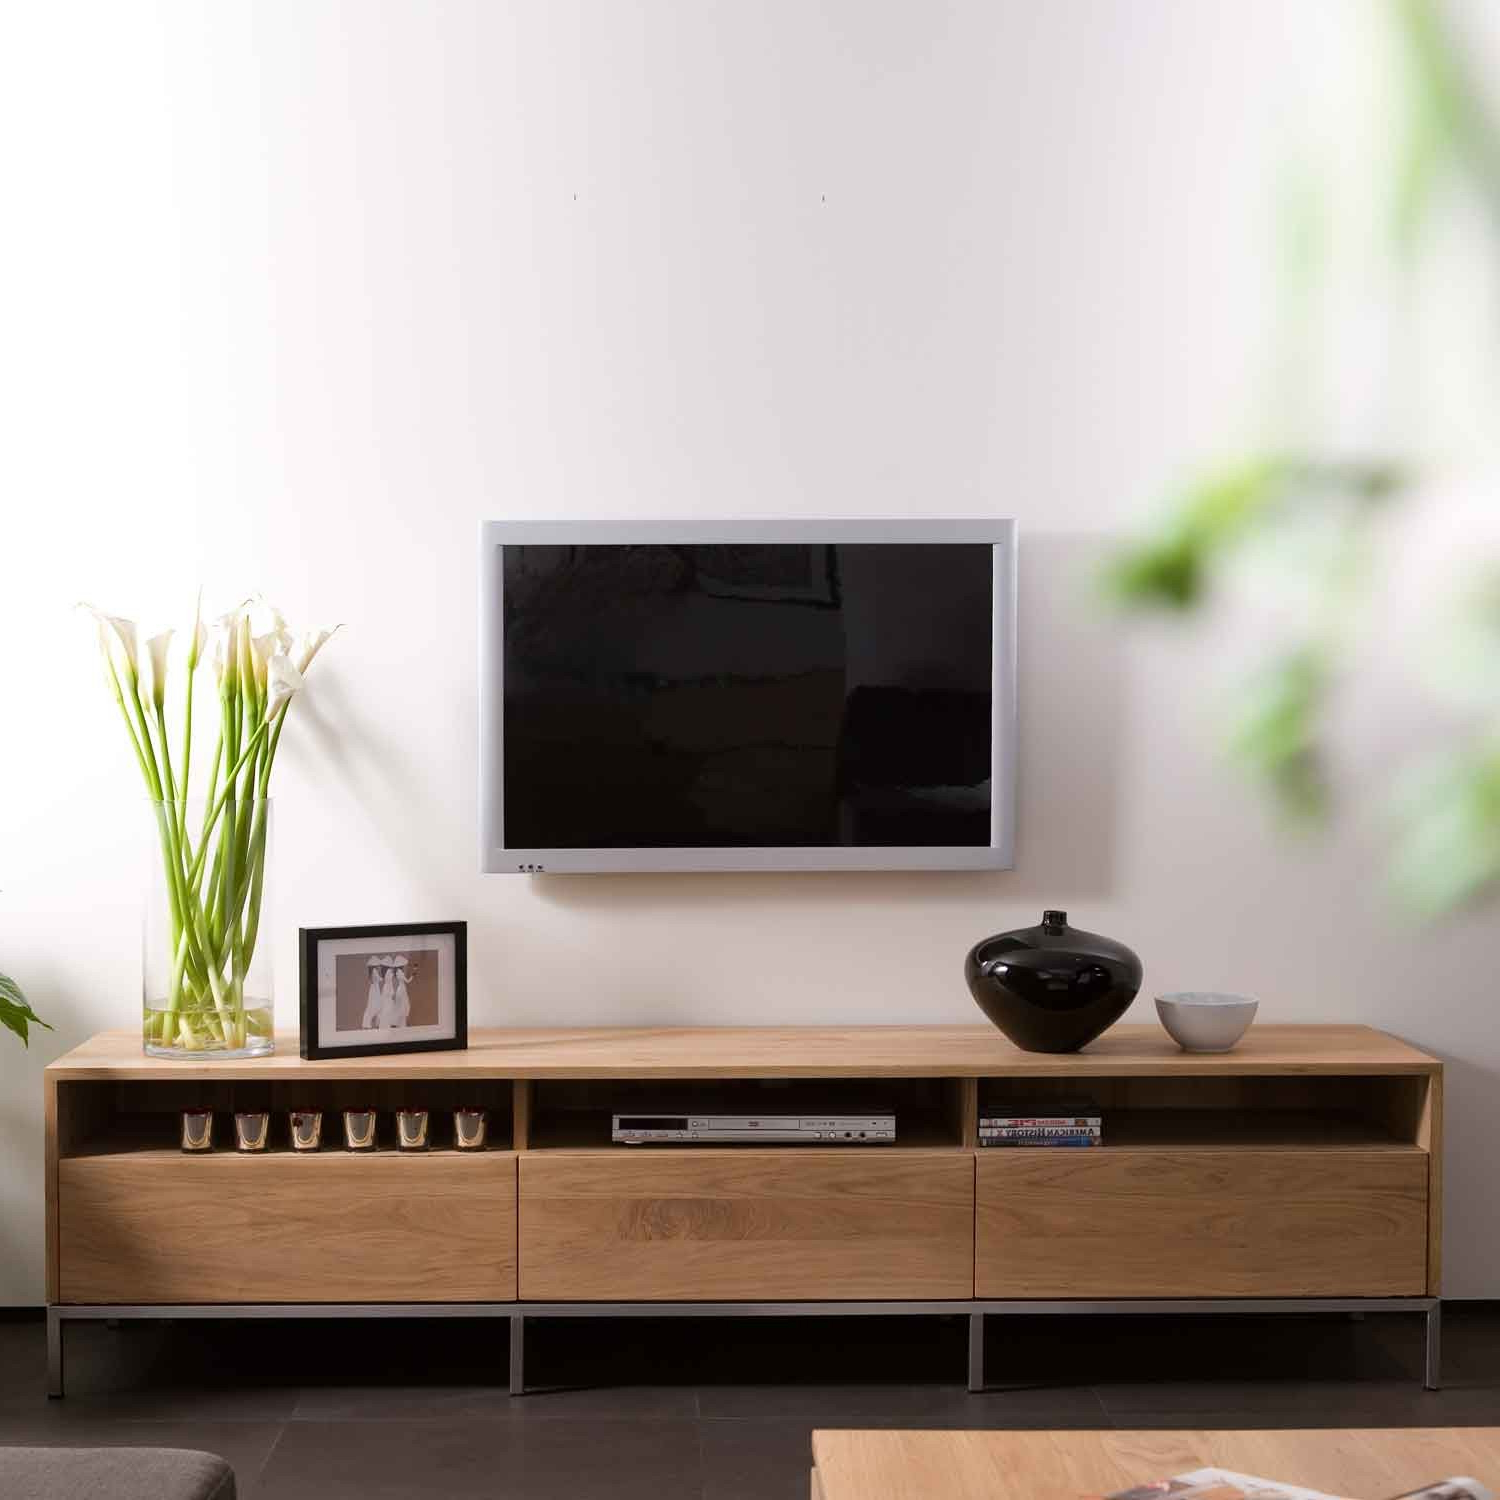 Solid Wood Furniture Throughout Solid Oak Tv Stands (Gallery 8 of 20)